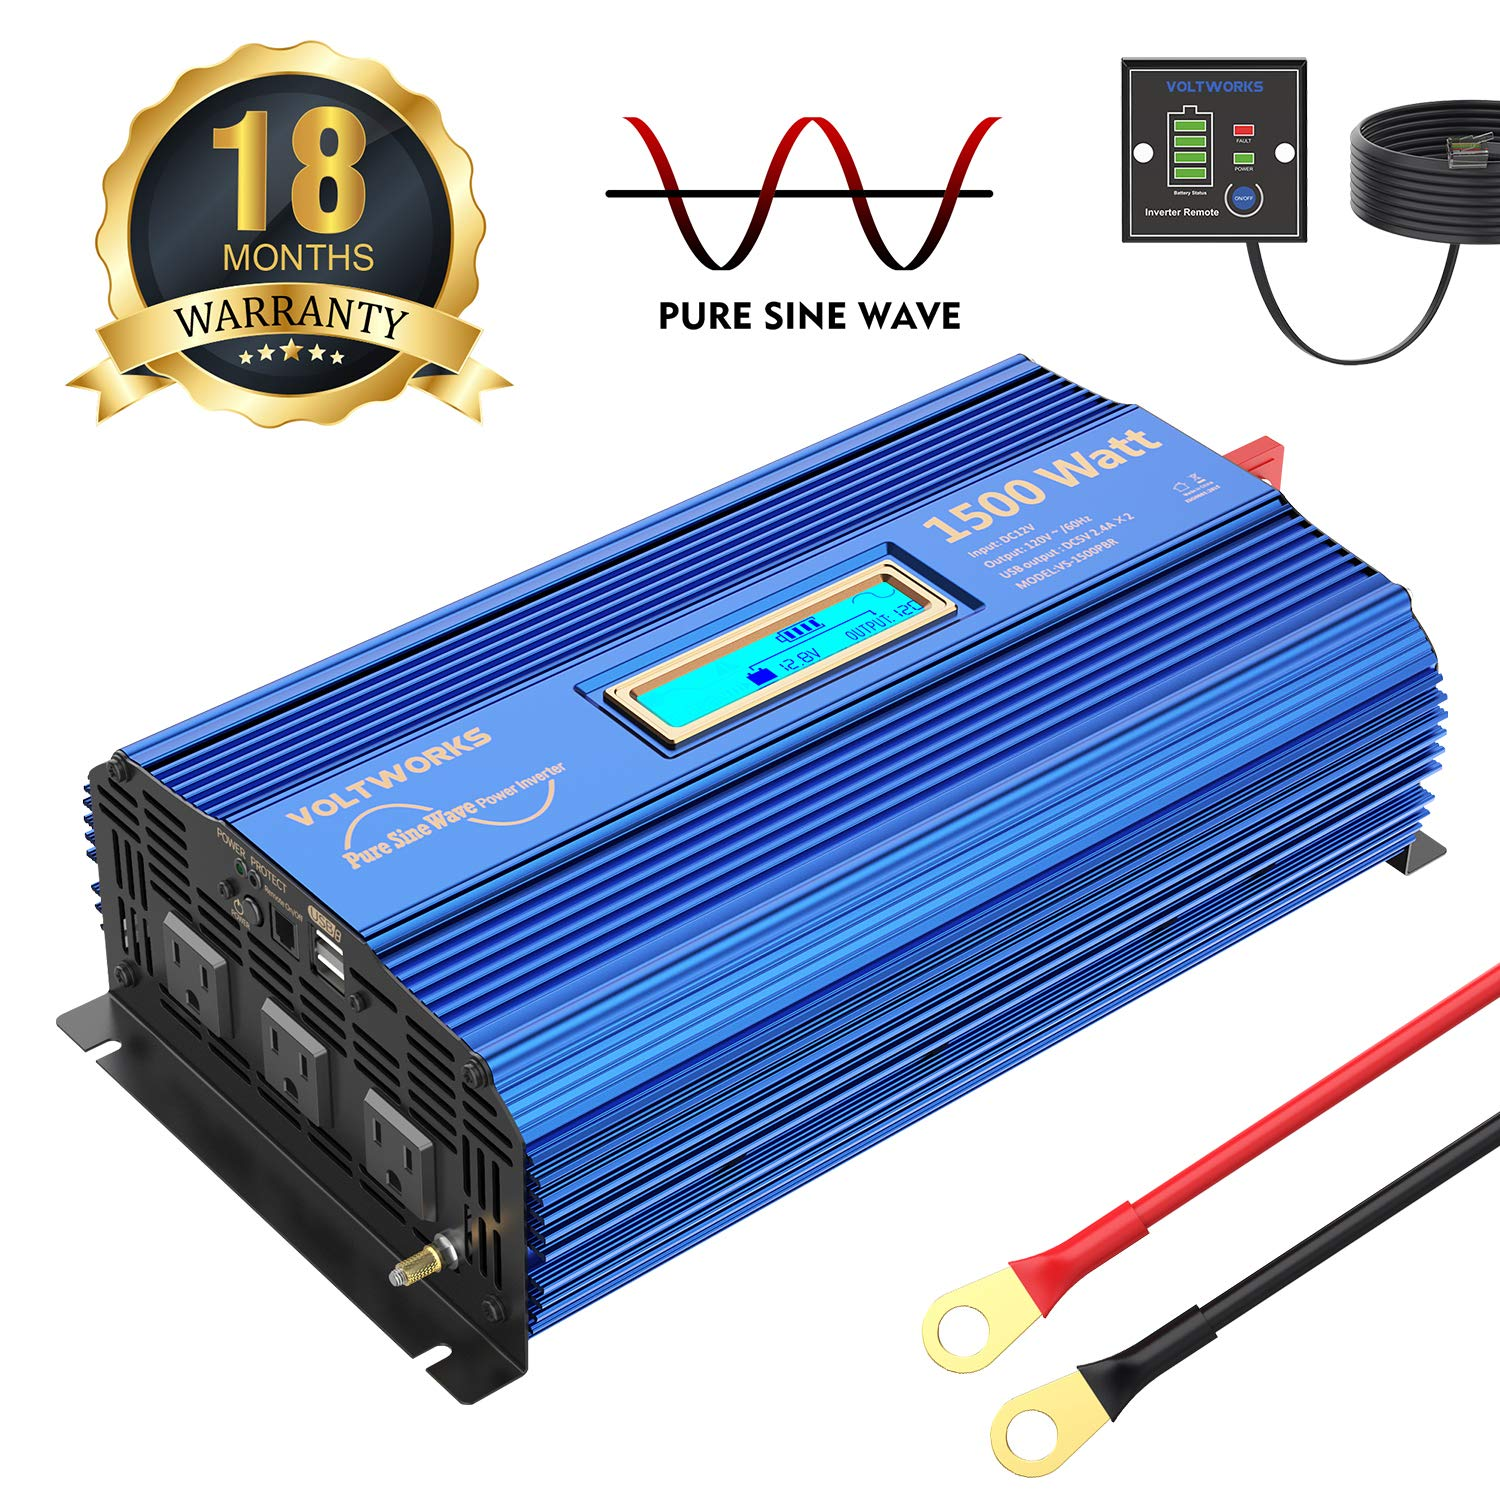 5 Best Power Inverter For Home 2020 [In-Depth Review] 13